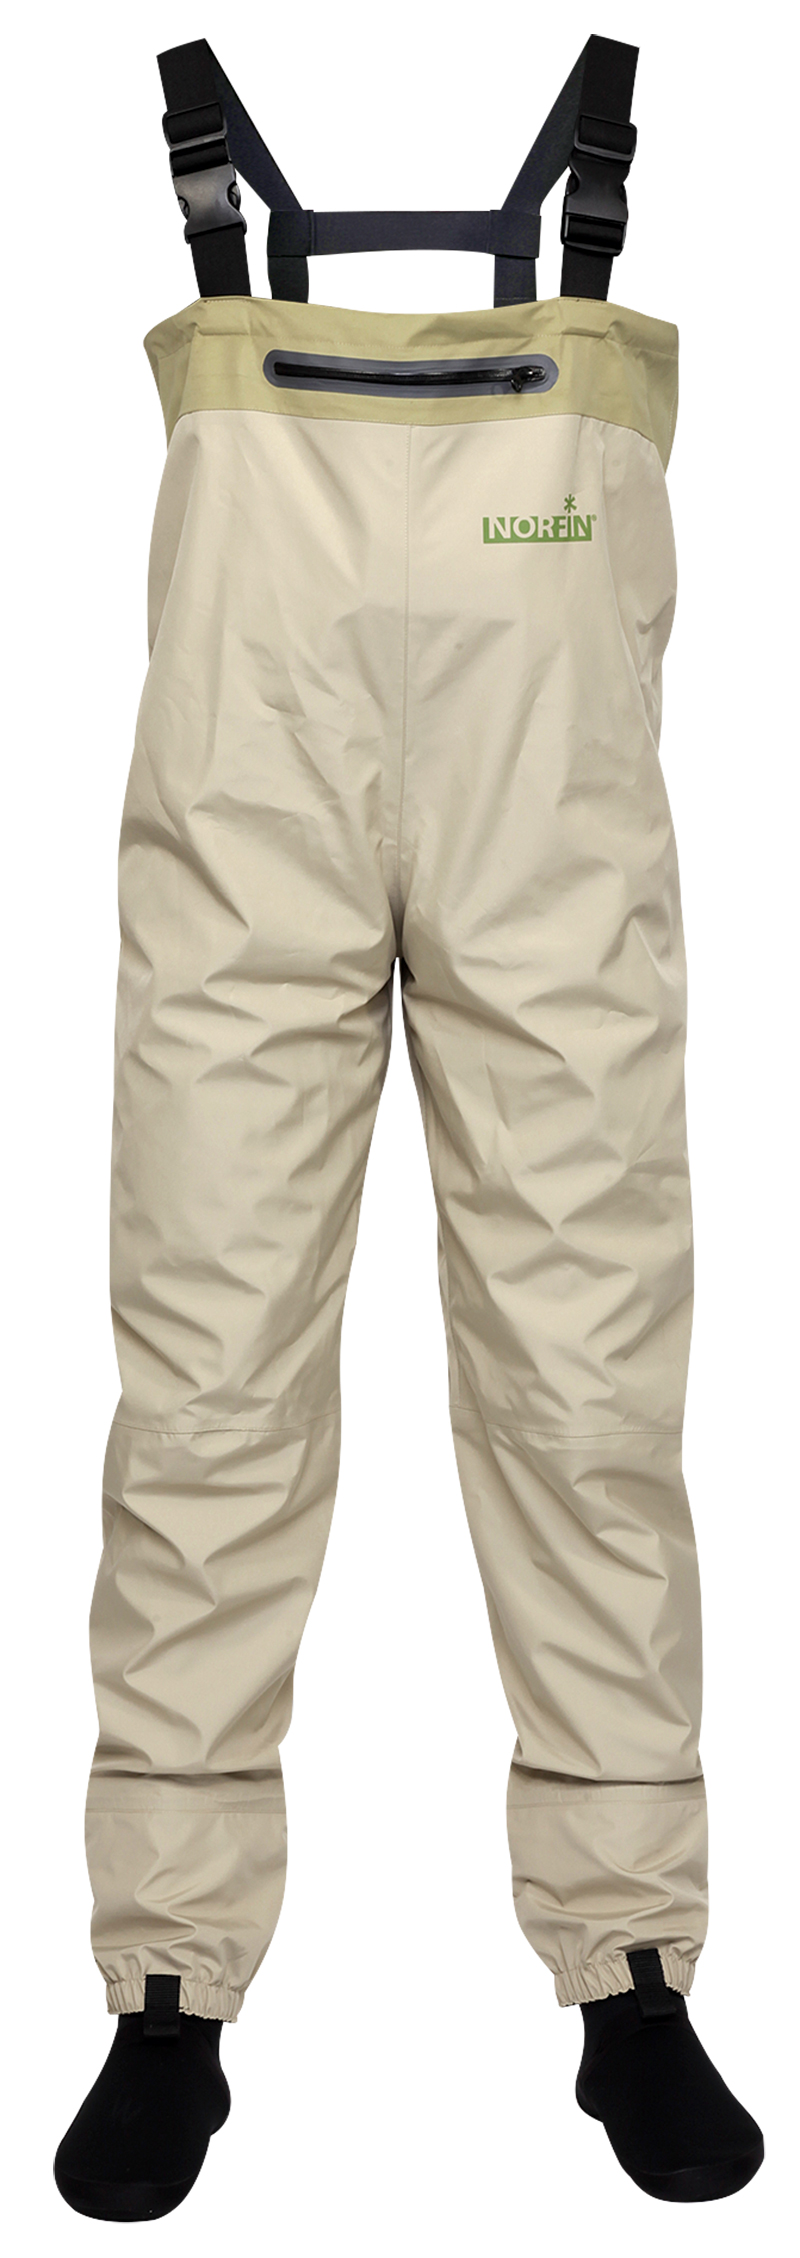 Norfin prsačky Waders Whitewater vel. XS